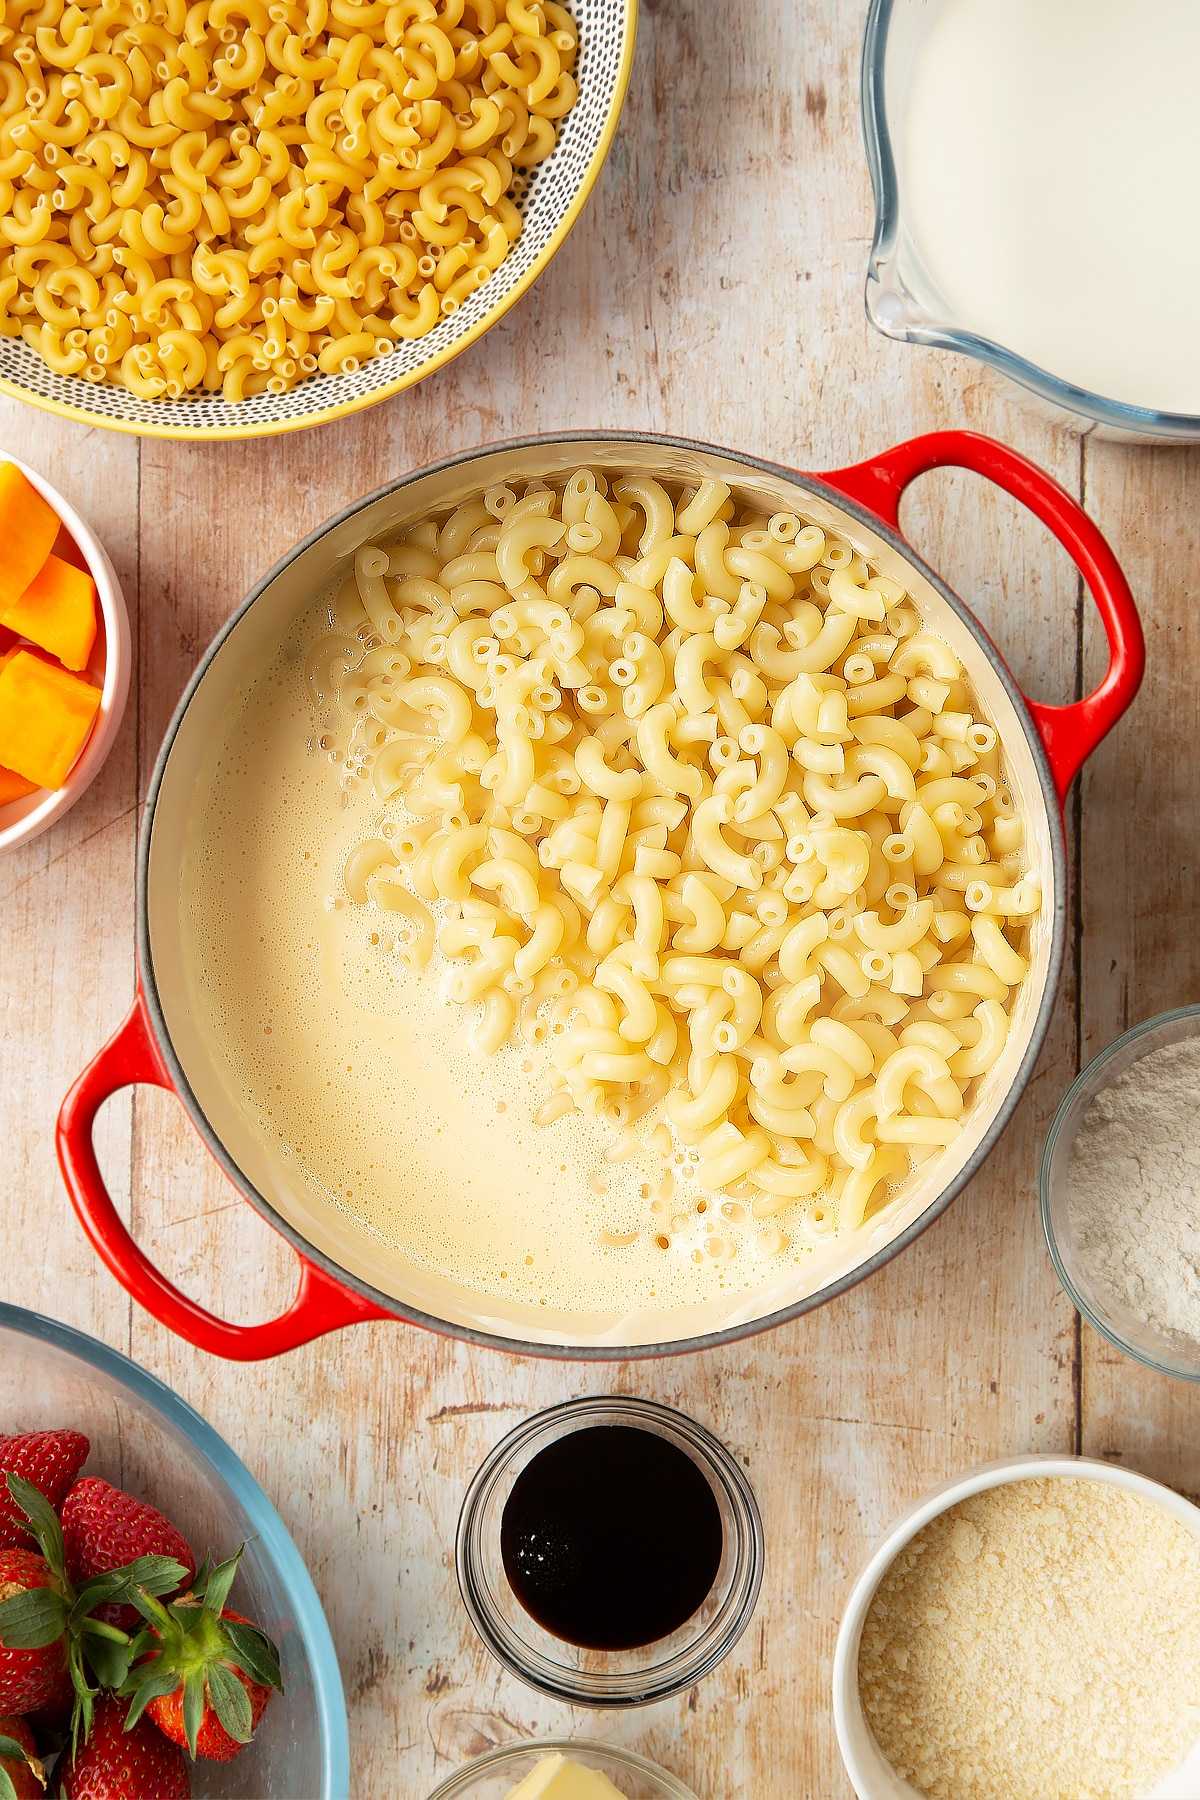 A saucepan containing a cheese and butternut squash sauce, topped with cooked macaroni. The pan is surrounded by ingredients for strawberry pasta.